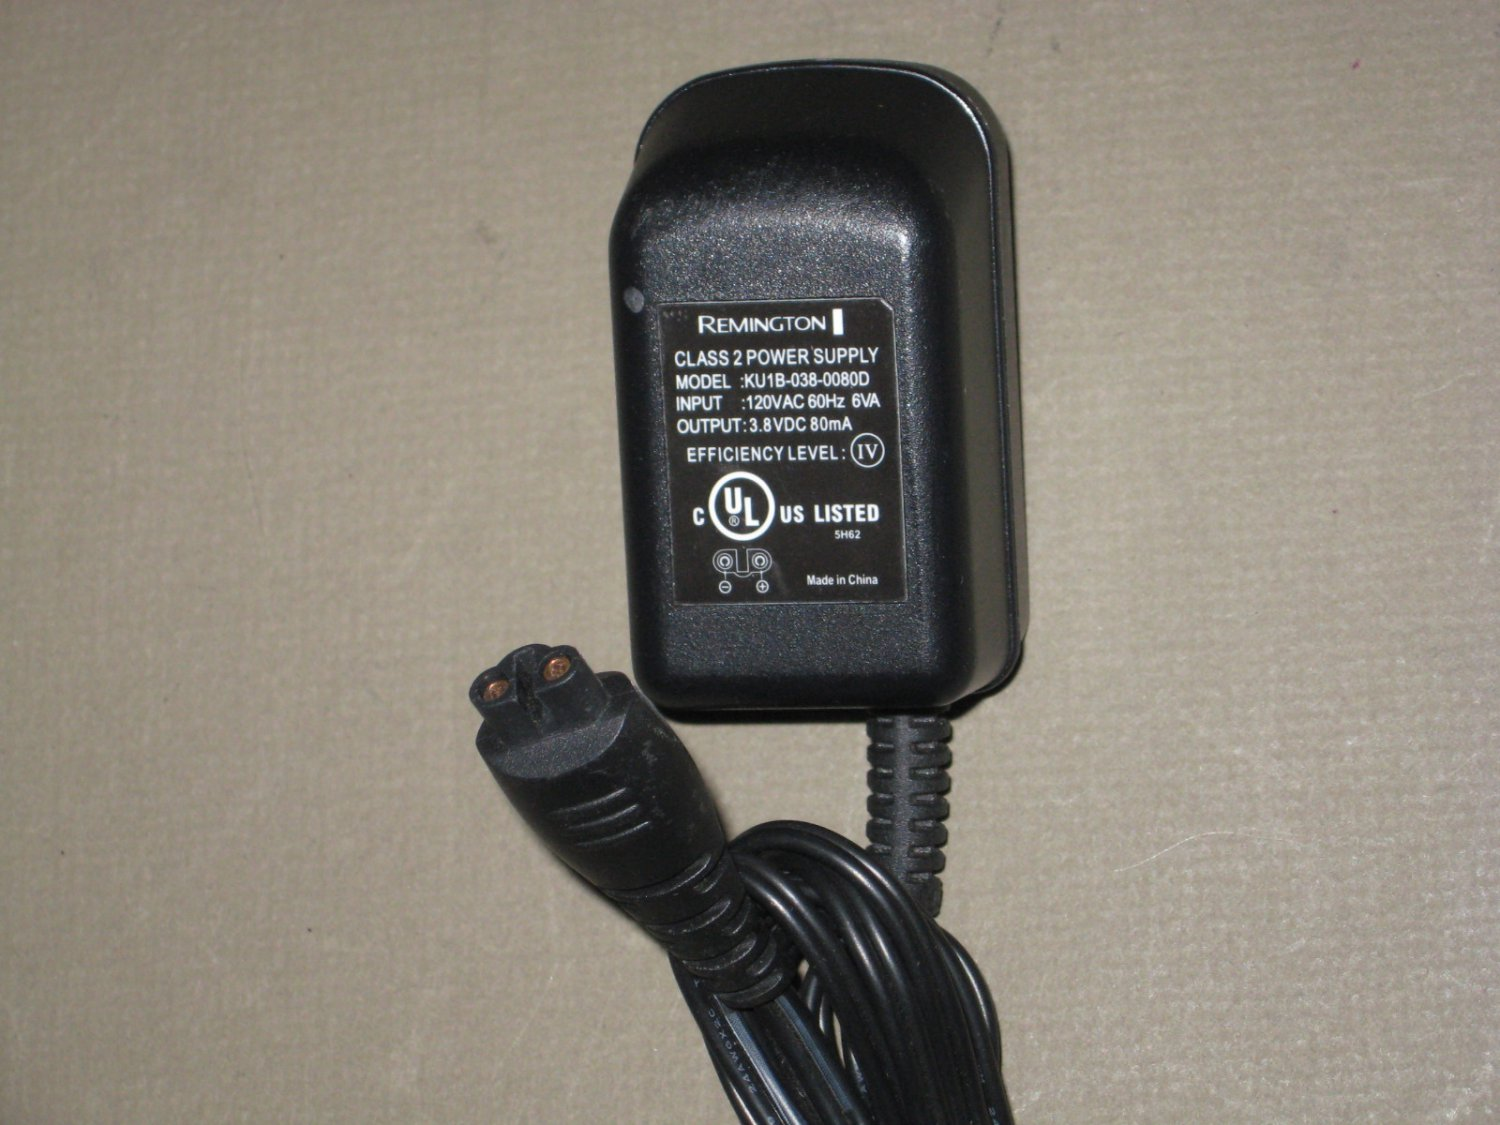 Remington AC Power Supply Adapter No. KU1B-038-0080D (Refurbished)